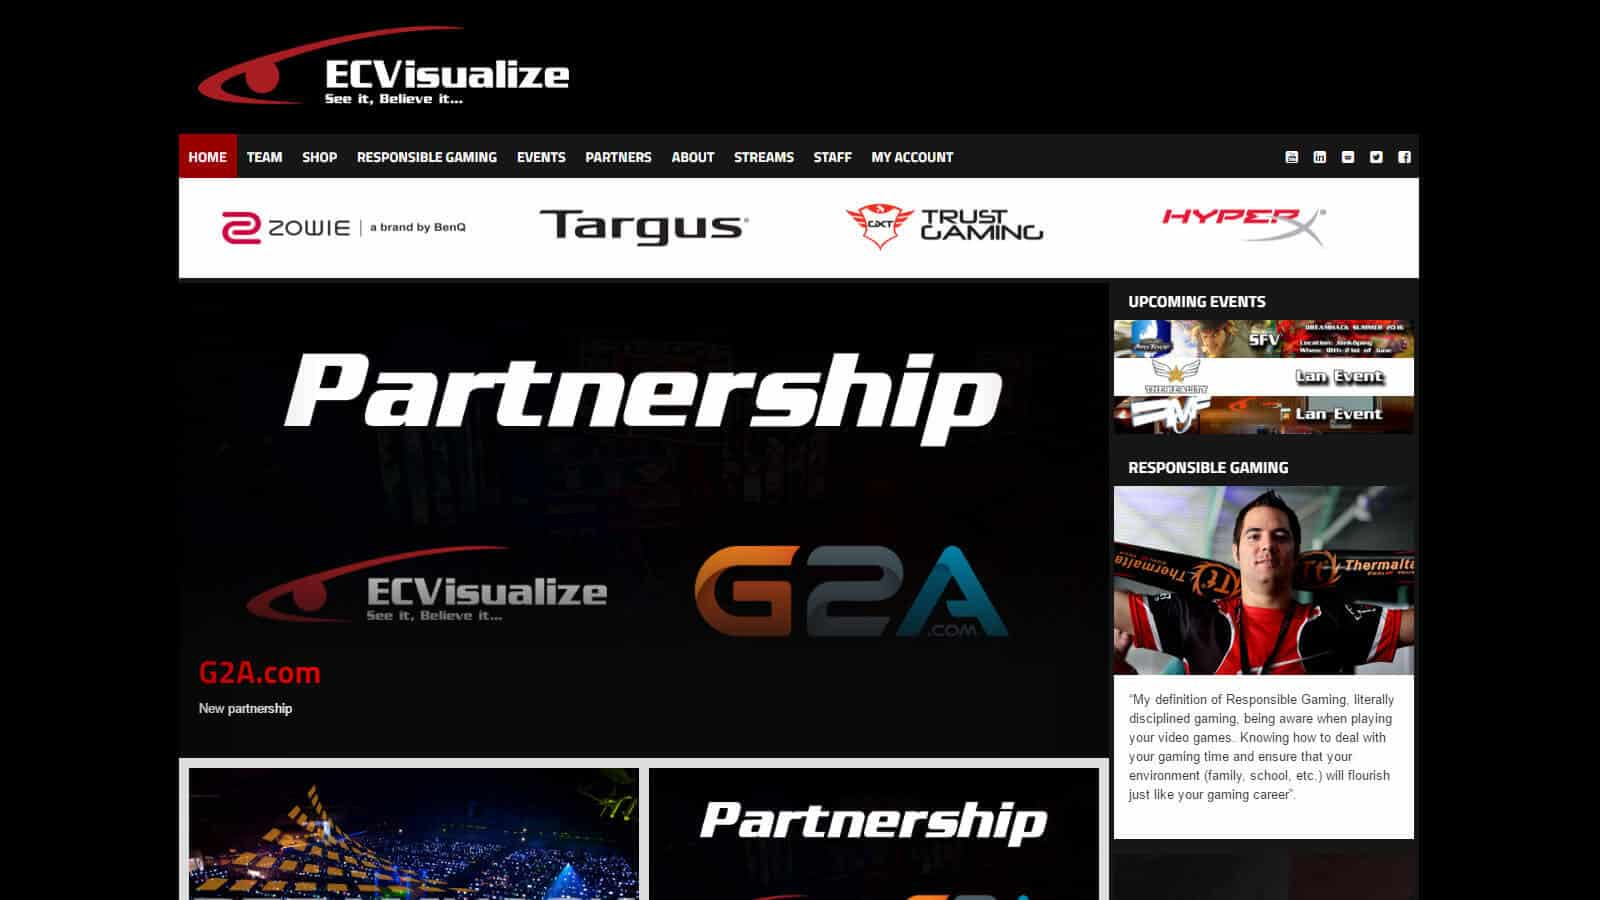 Website Ecvisualize  - ecvisualize - Websites